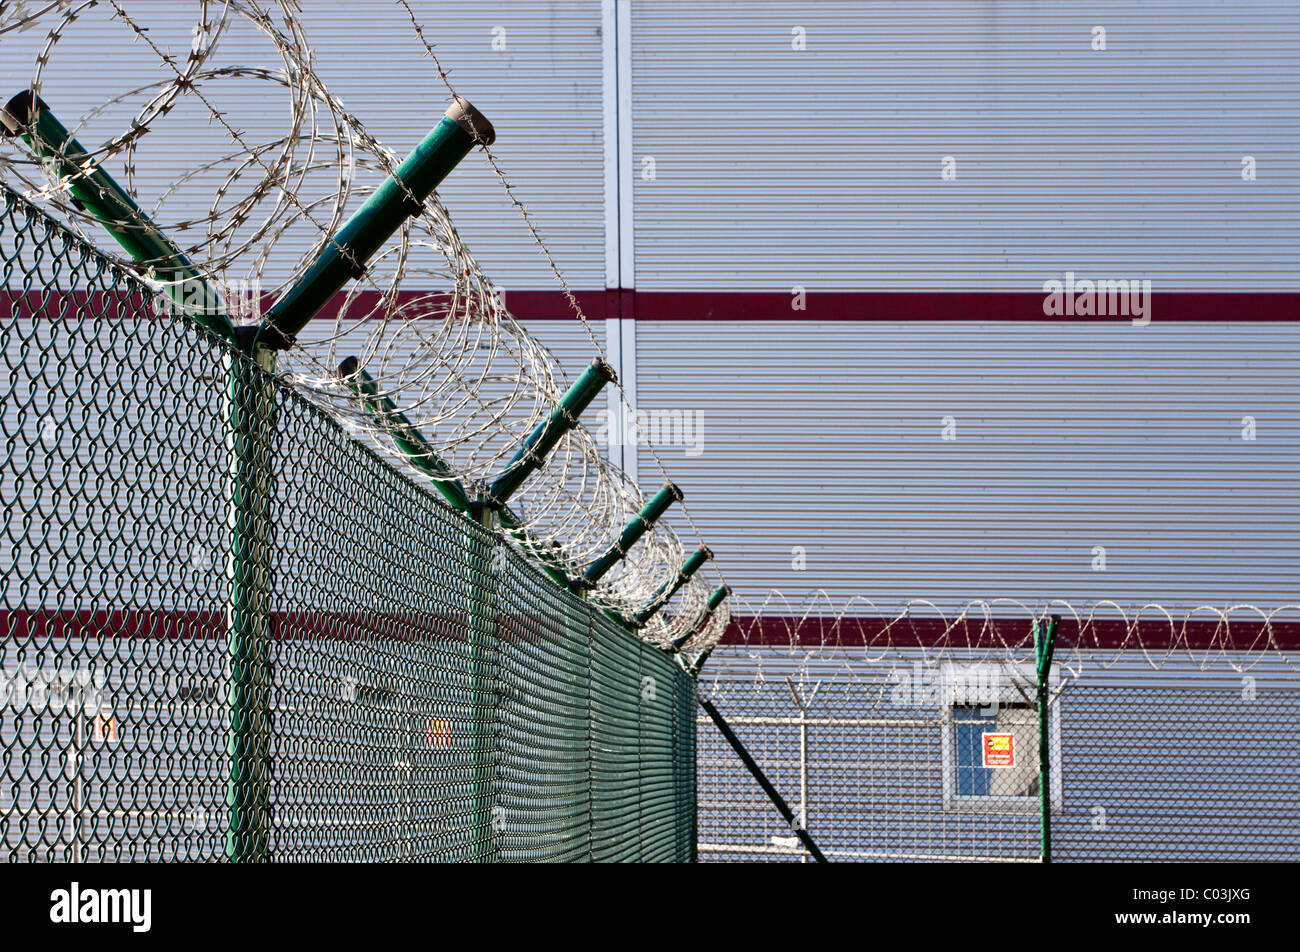 Barbed wire fence in front of a warehouse - Stock Image